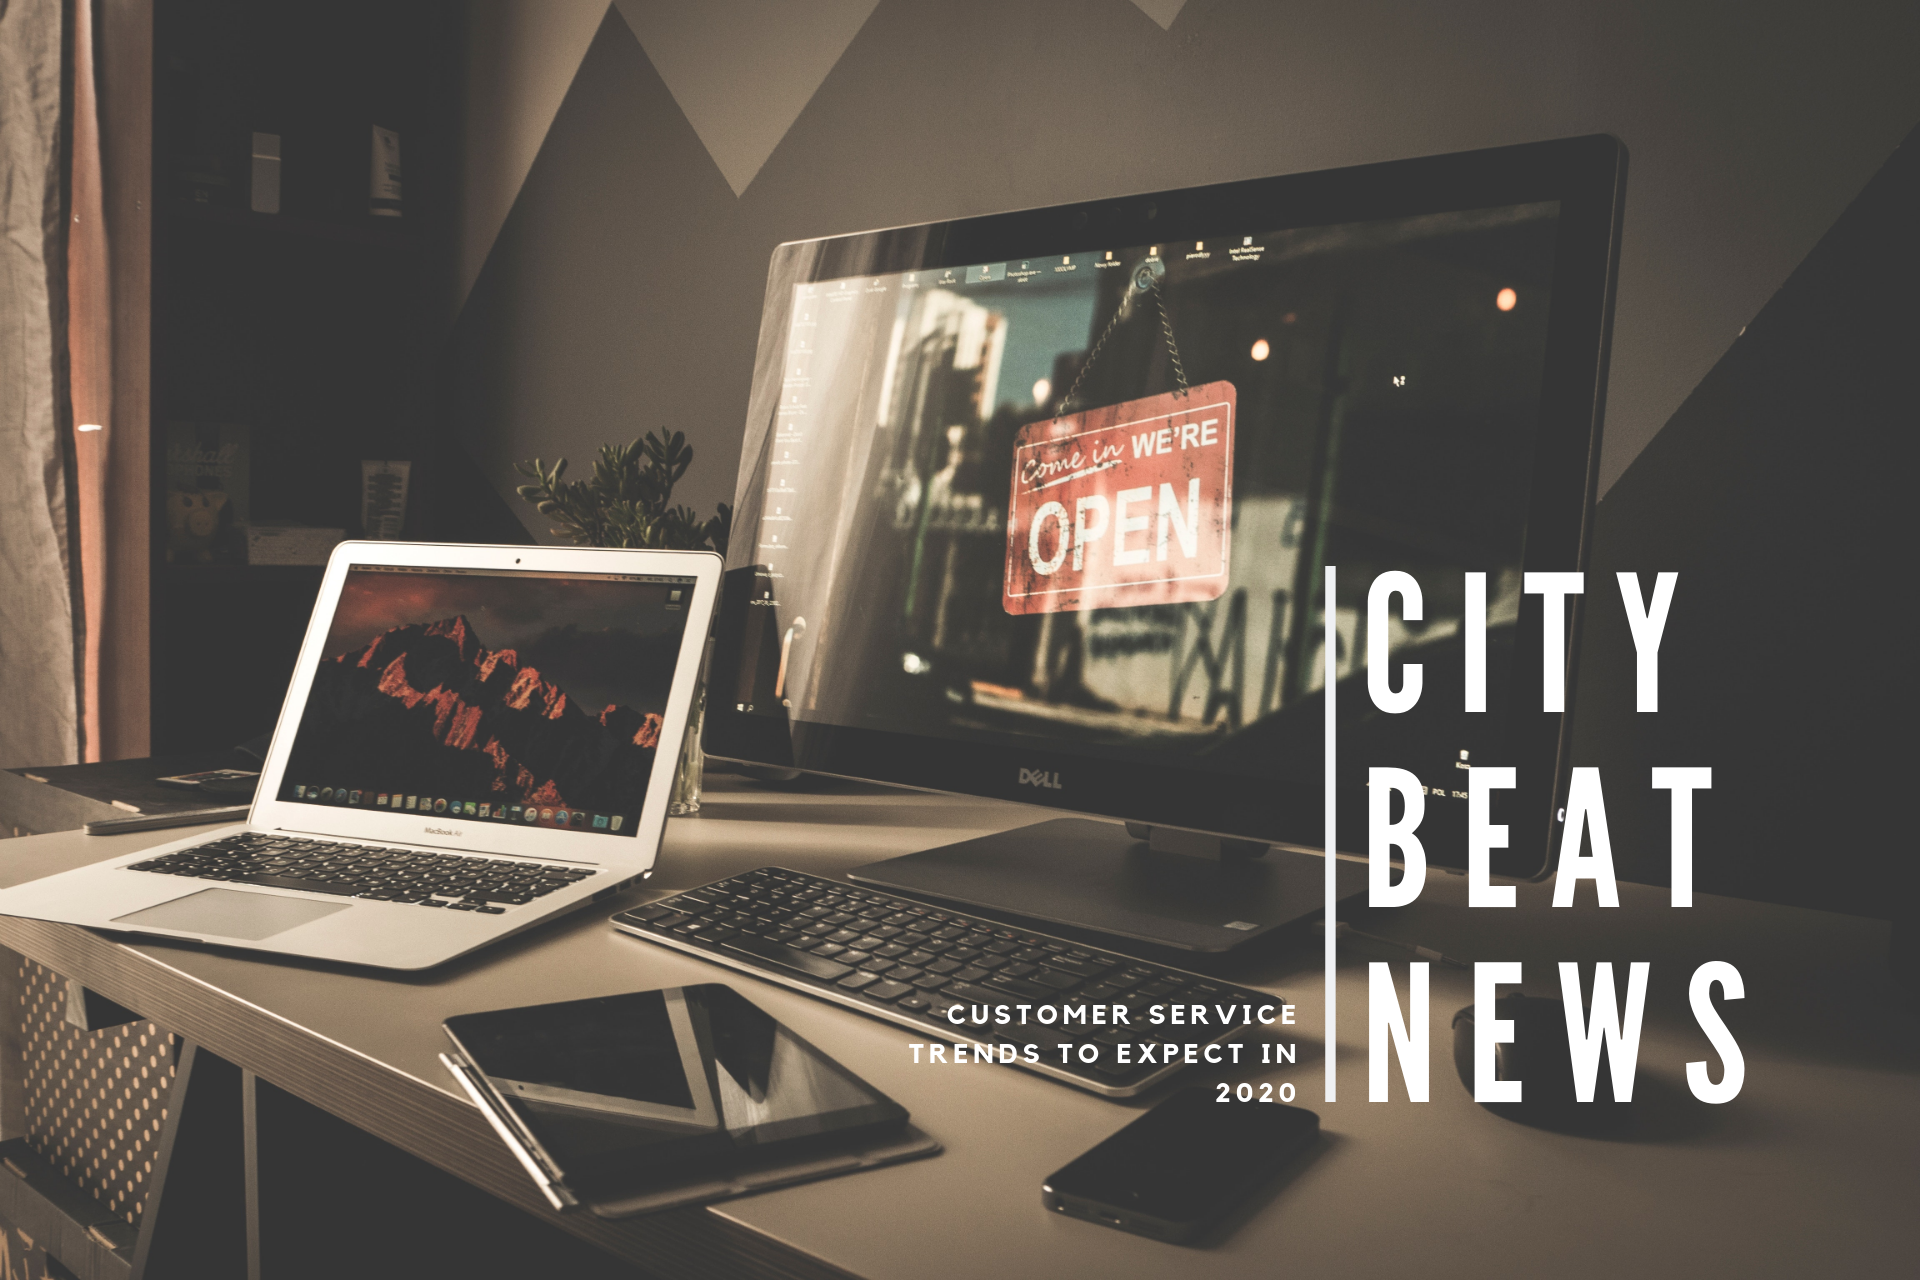 City Beat News Outlines Customer Service Trends To Expect In 2020